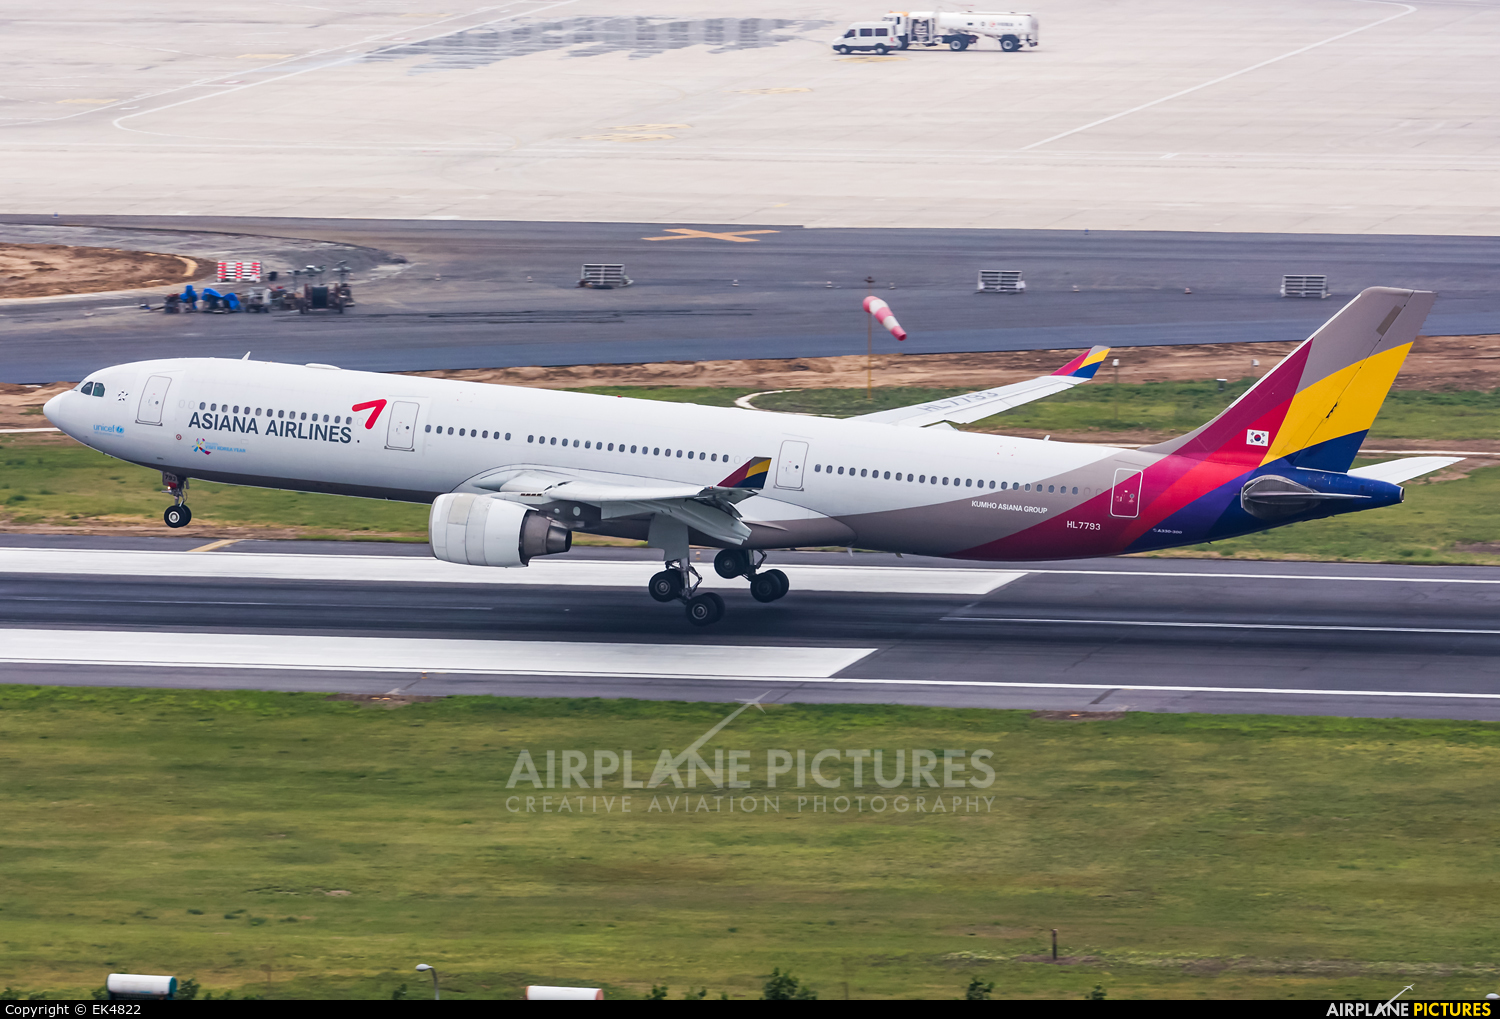 Asiana Airlines HL7793 aircraft at Dalian Zhoushuizi Int'l